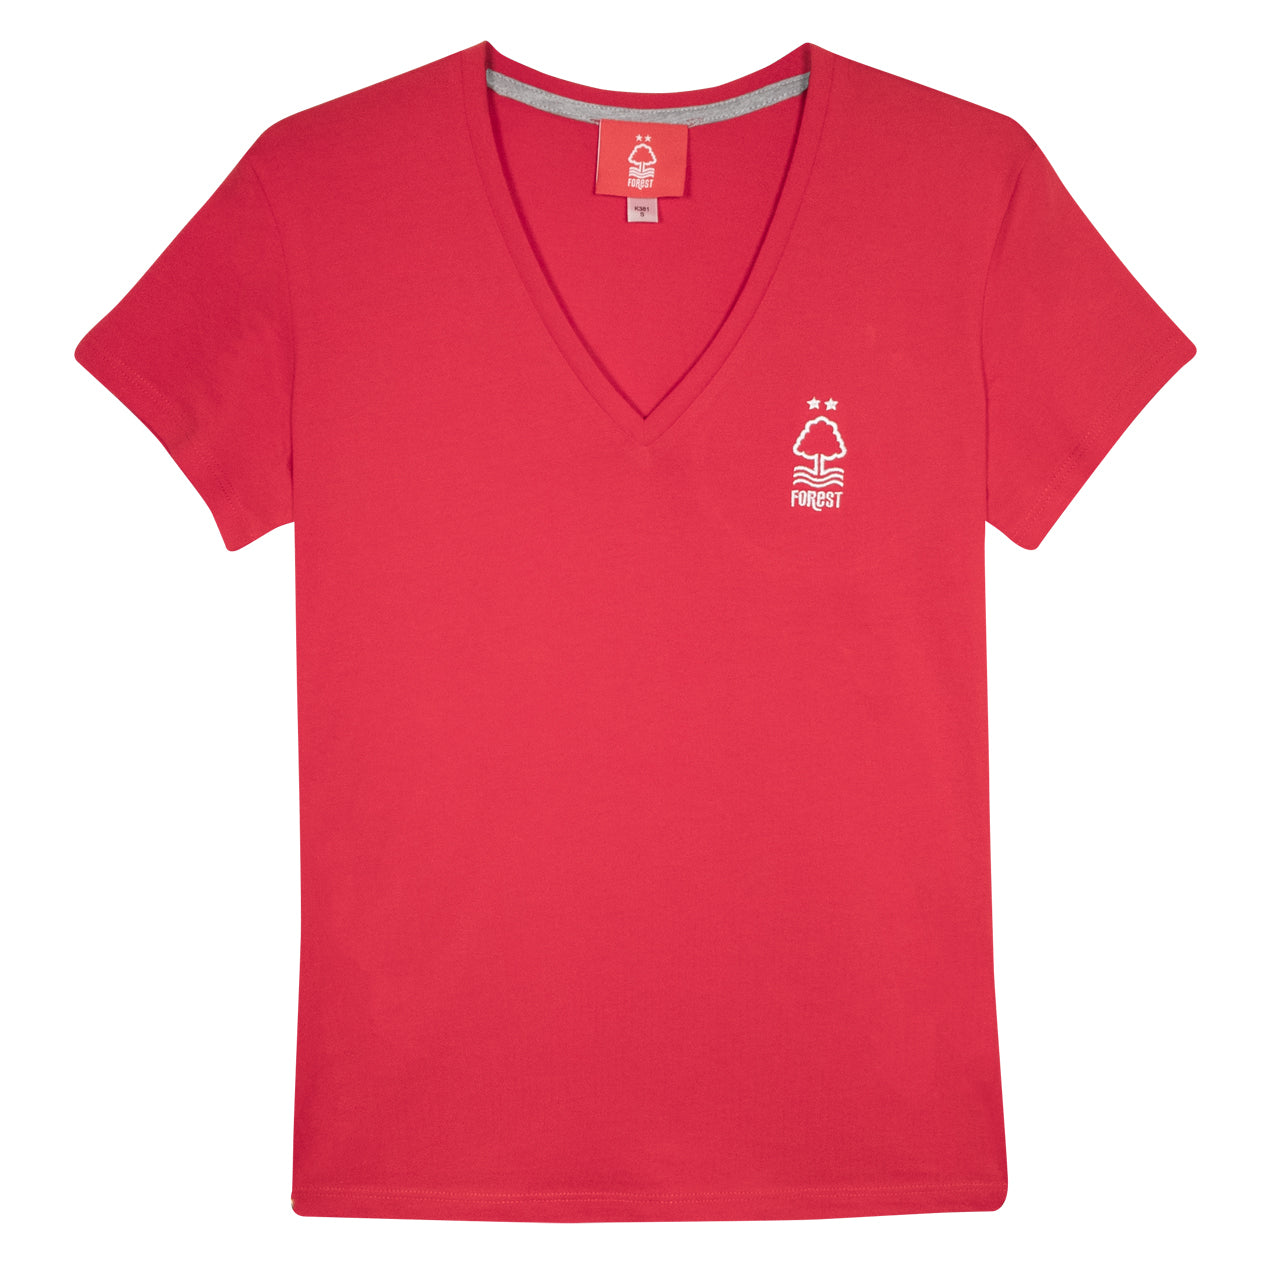 NFFC Women's Red V-Neck T-Shirt